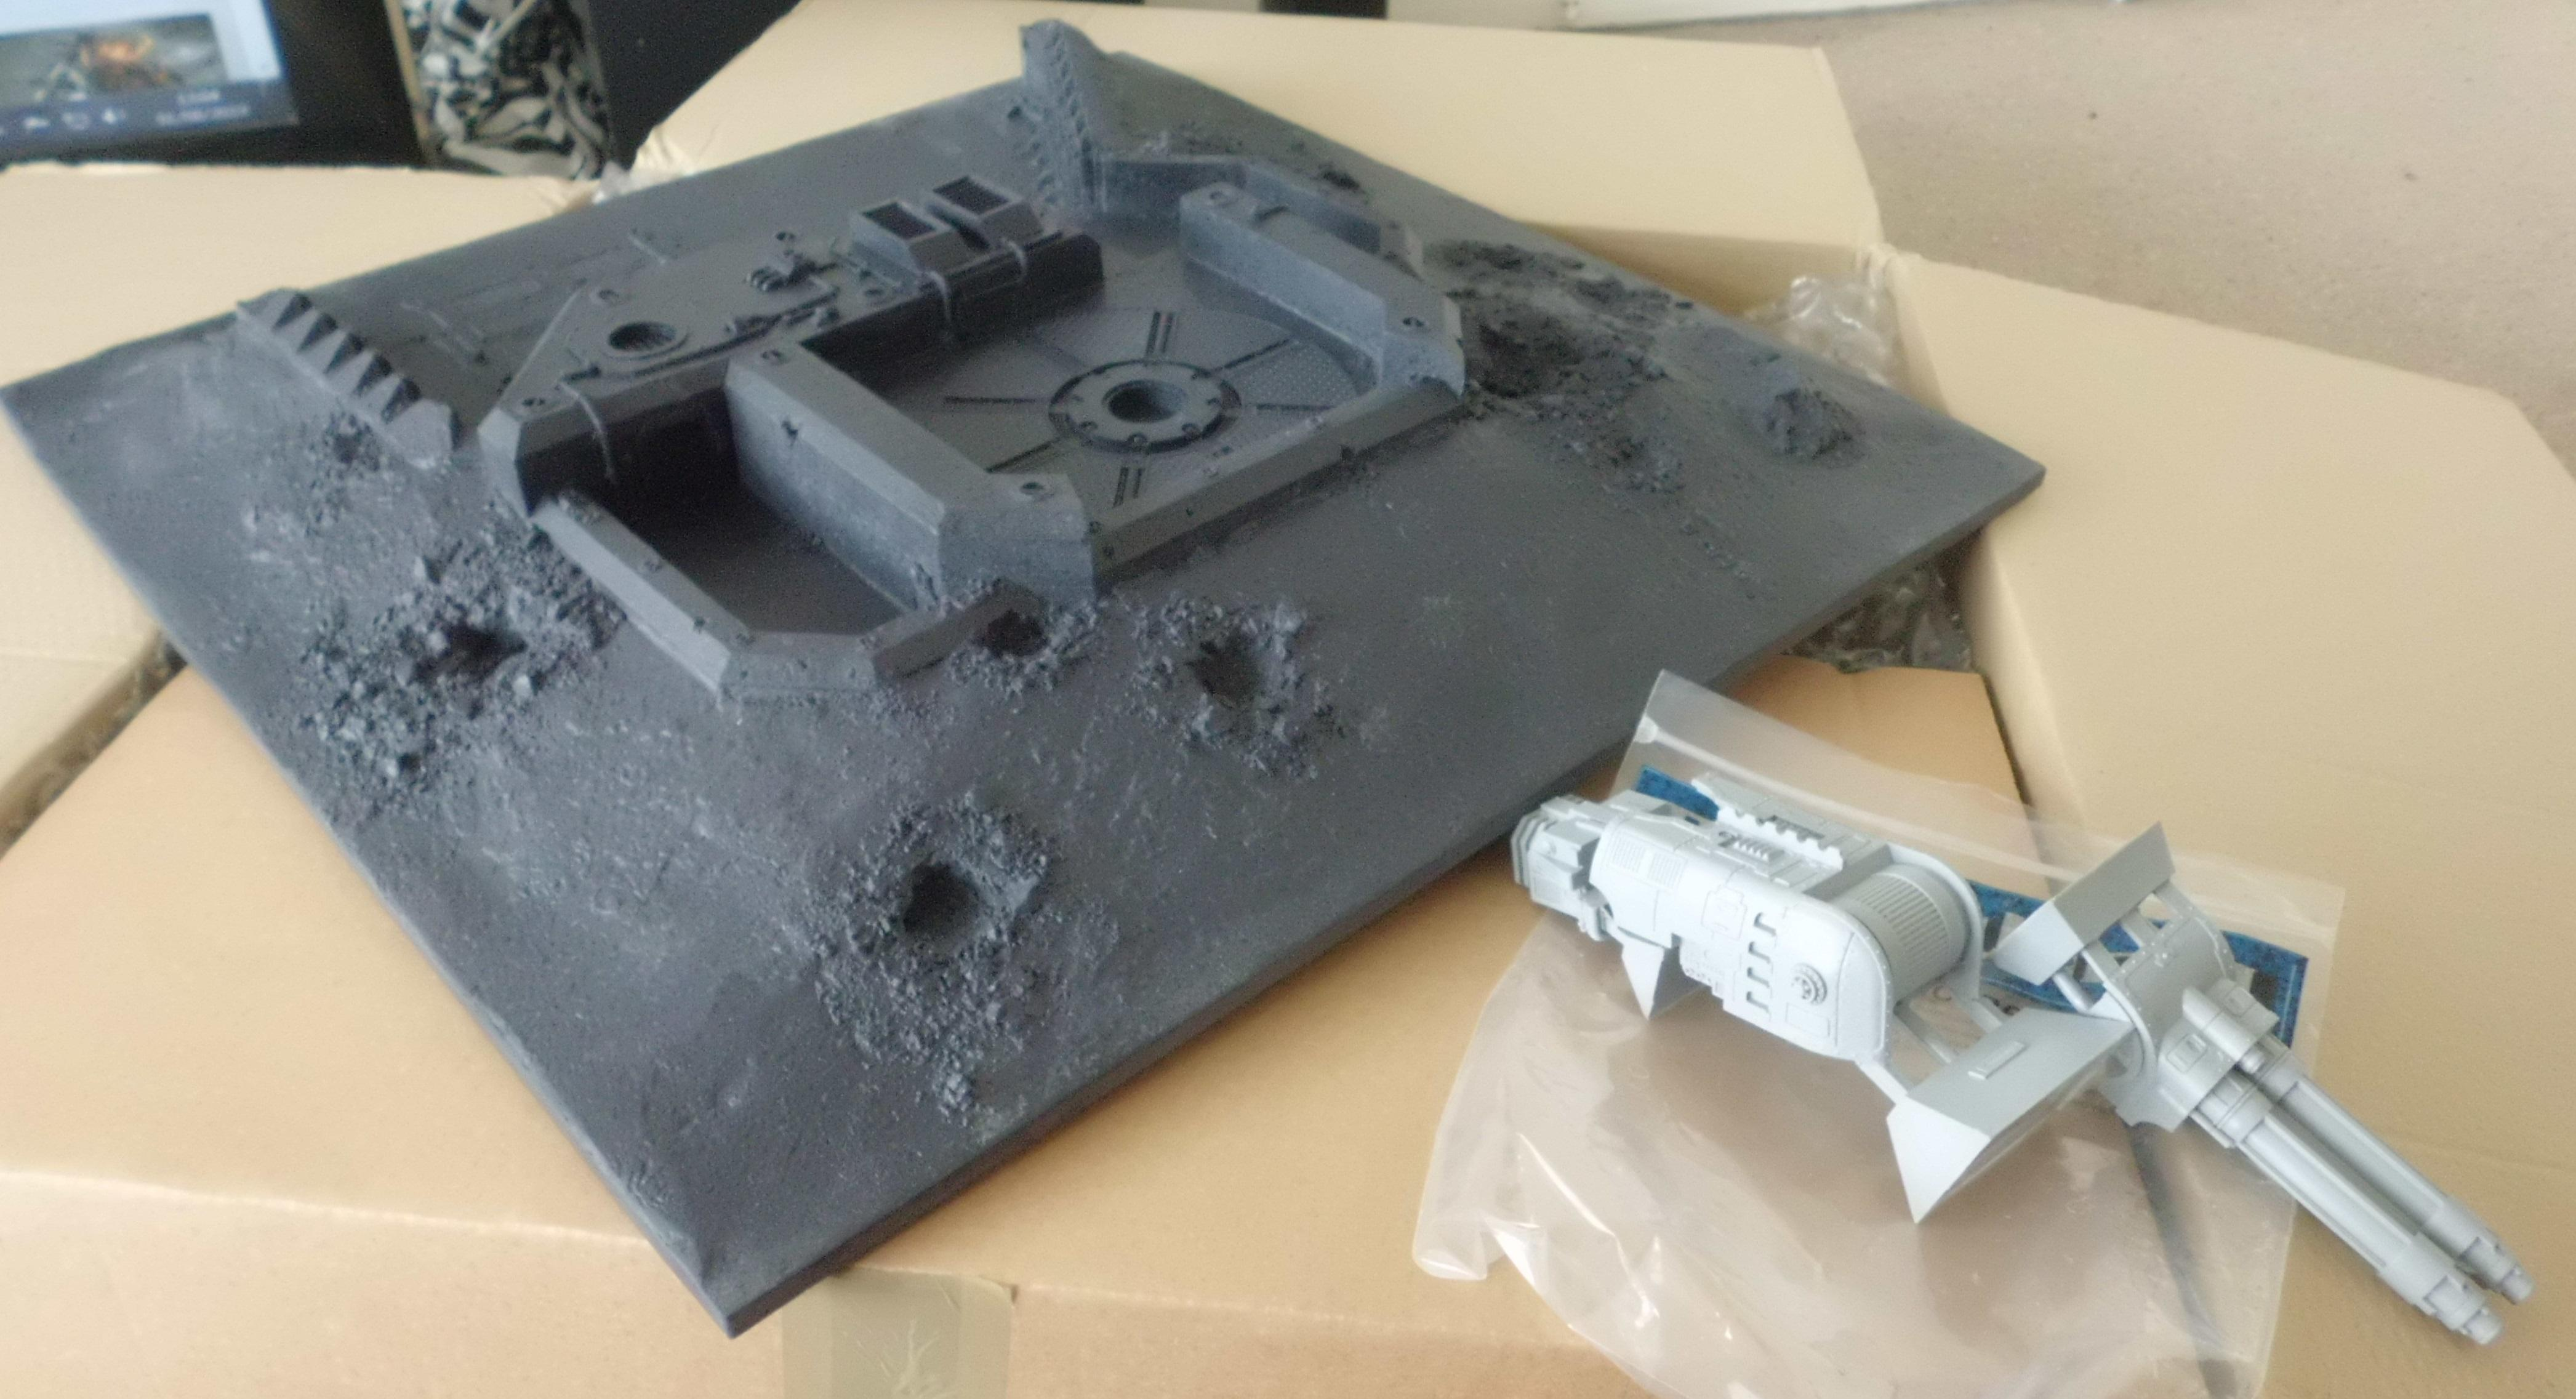 30k, Fortification, Horus Heresy, Primus Redoubt, Realm Of Battle, Turbo Laser Emplacement, Warhammer 40,000